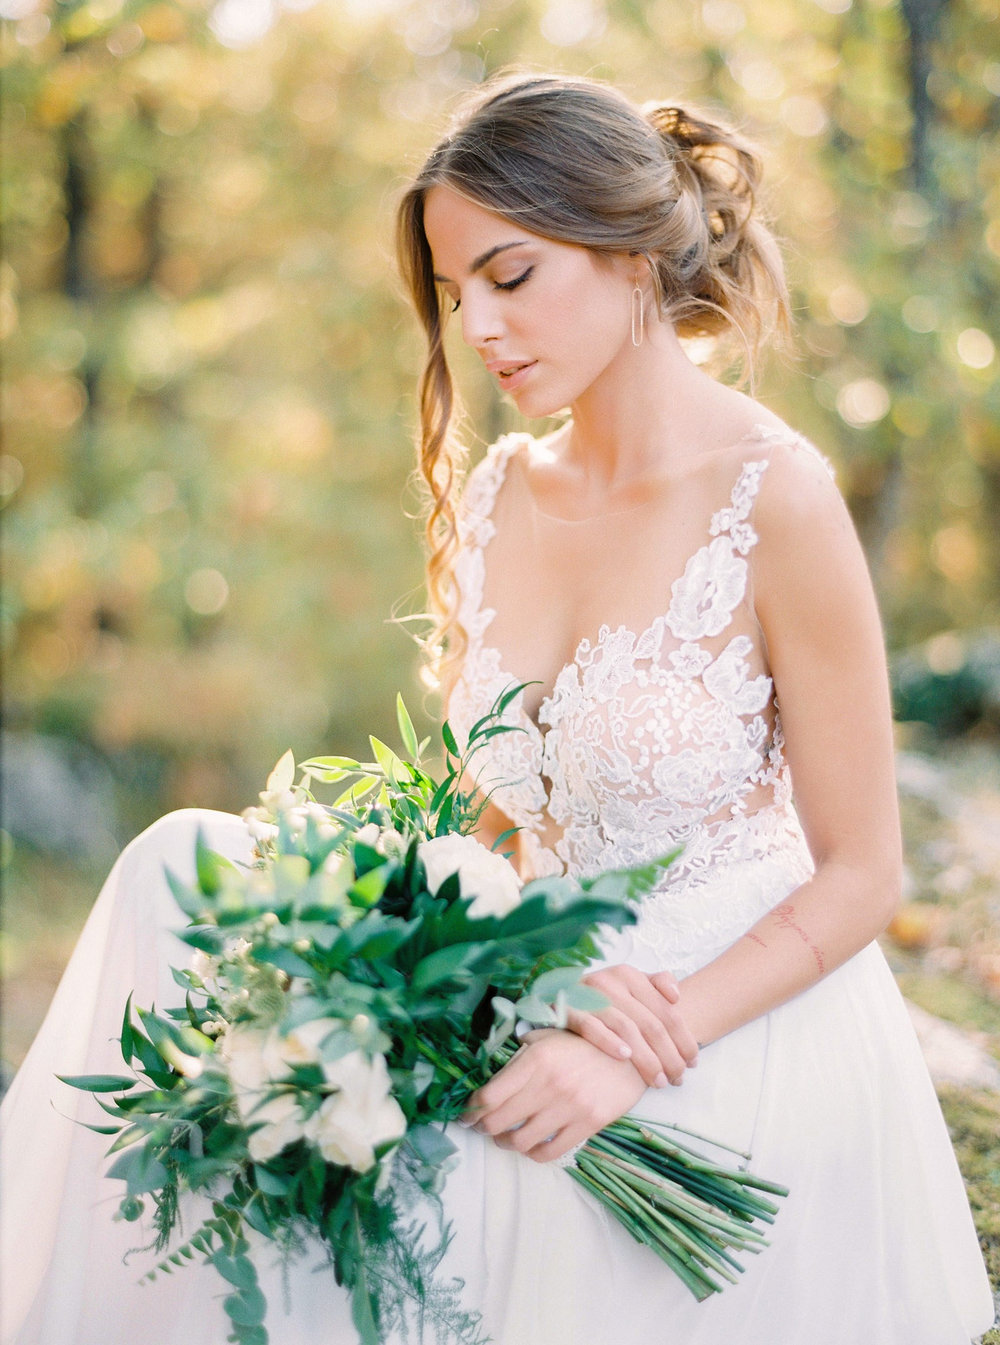 Bridal dress: ALKMINI, Photo credits: The Secret Owl Team